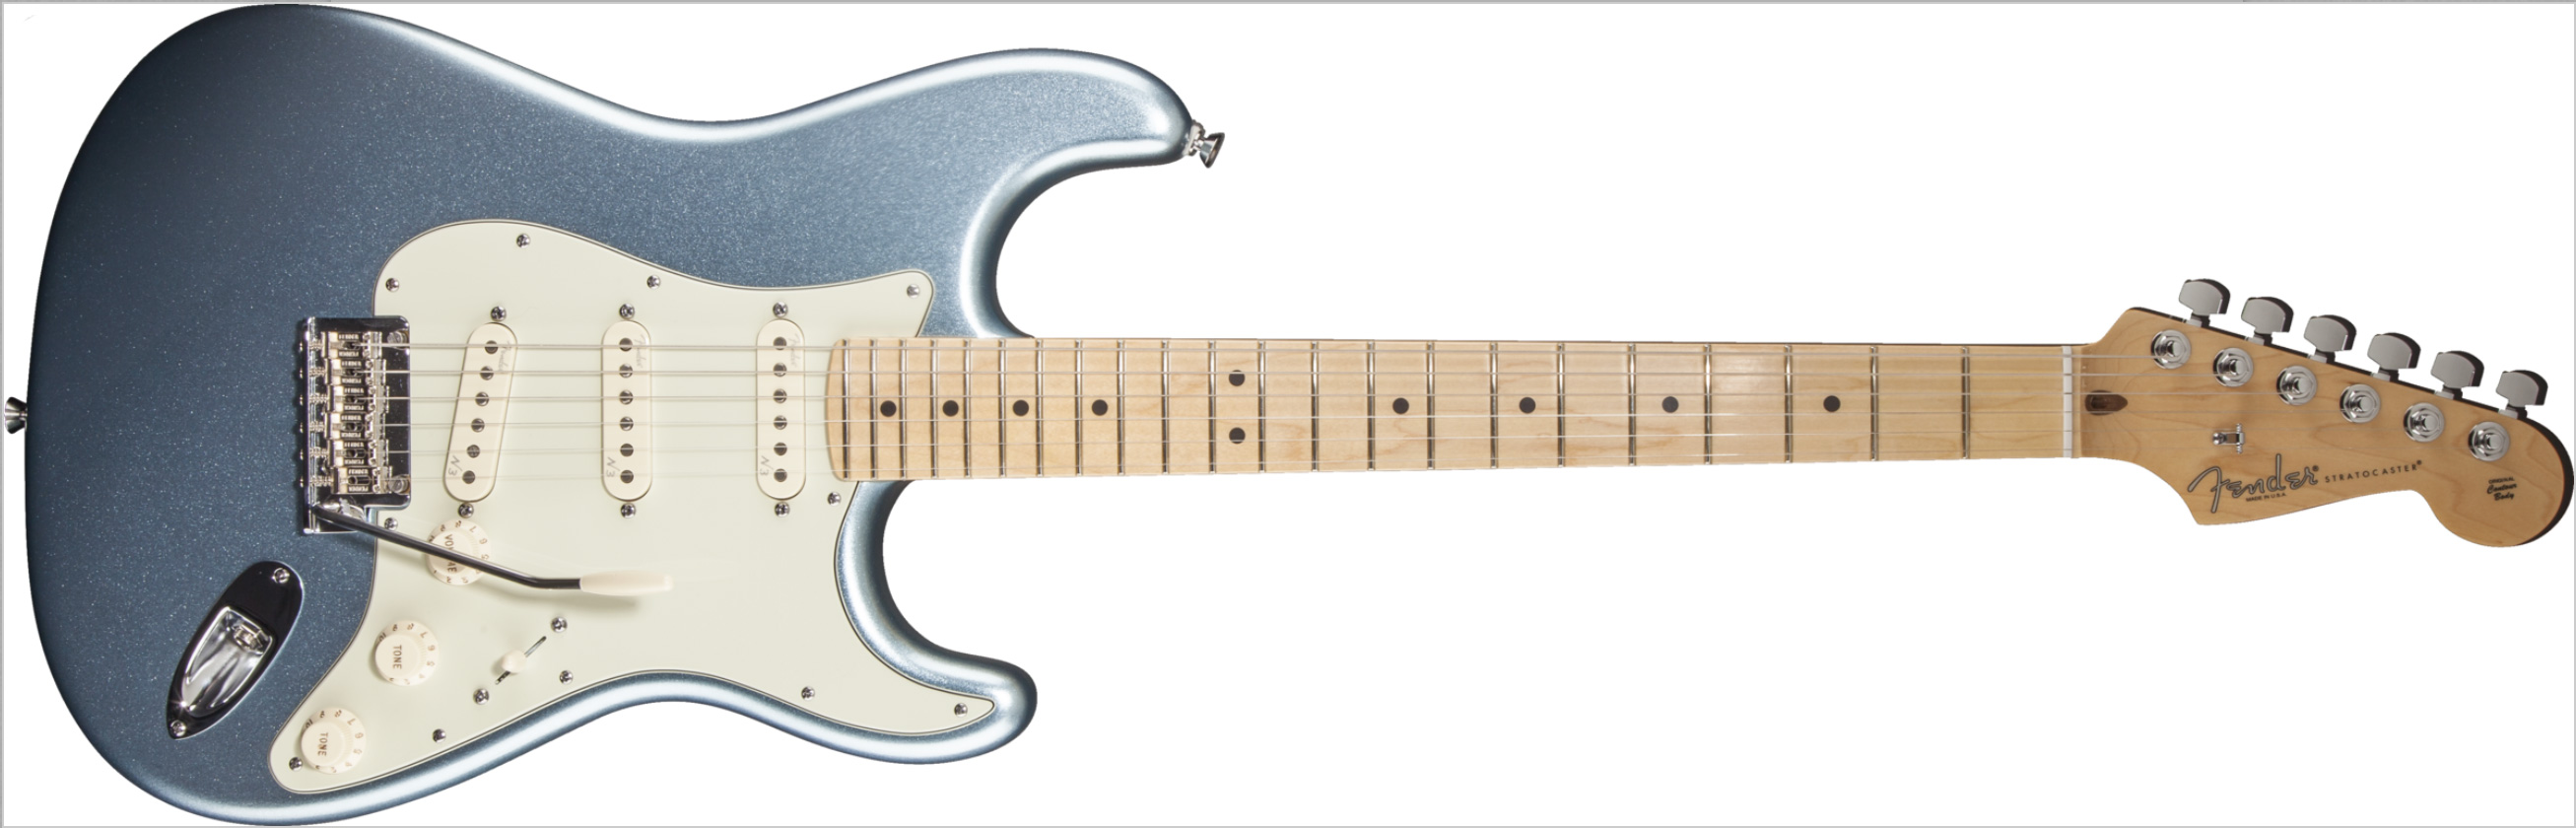 Fender american deluxe strat plus image 765096 audiofanzine fender american deluxe strat plus banshee in avalon images freerunsca Choice Image